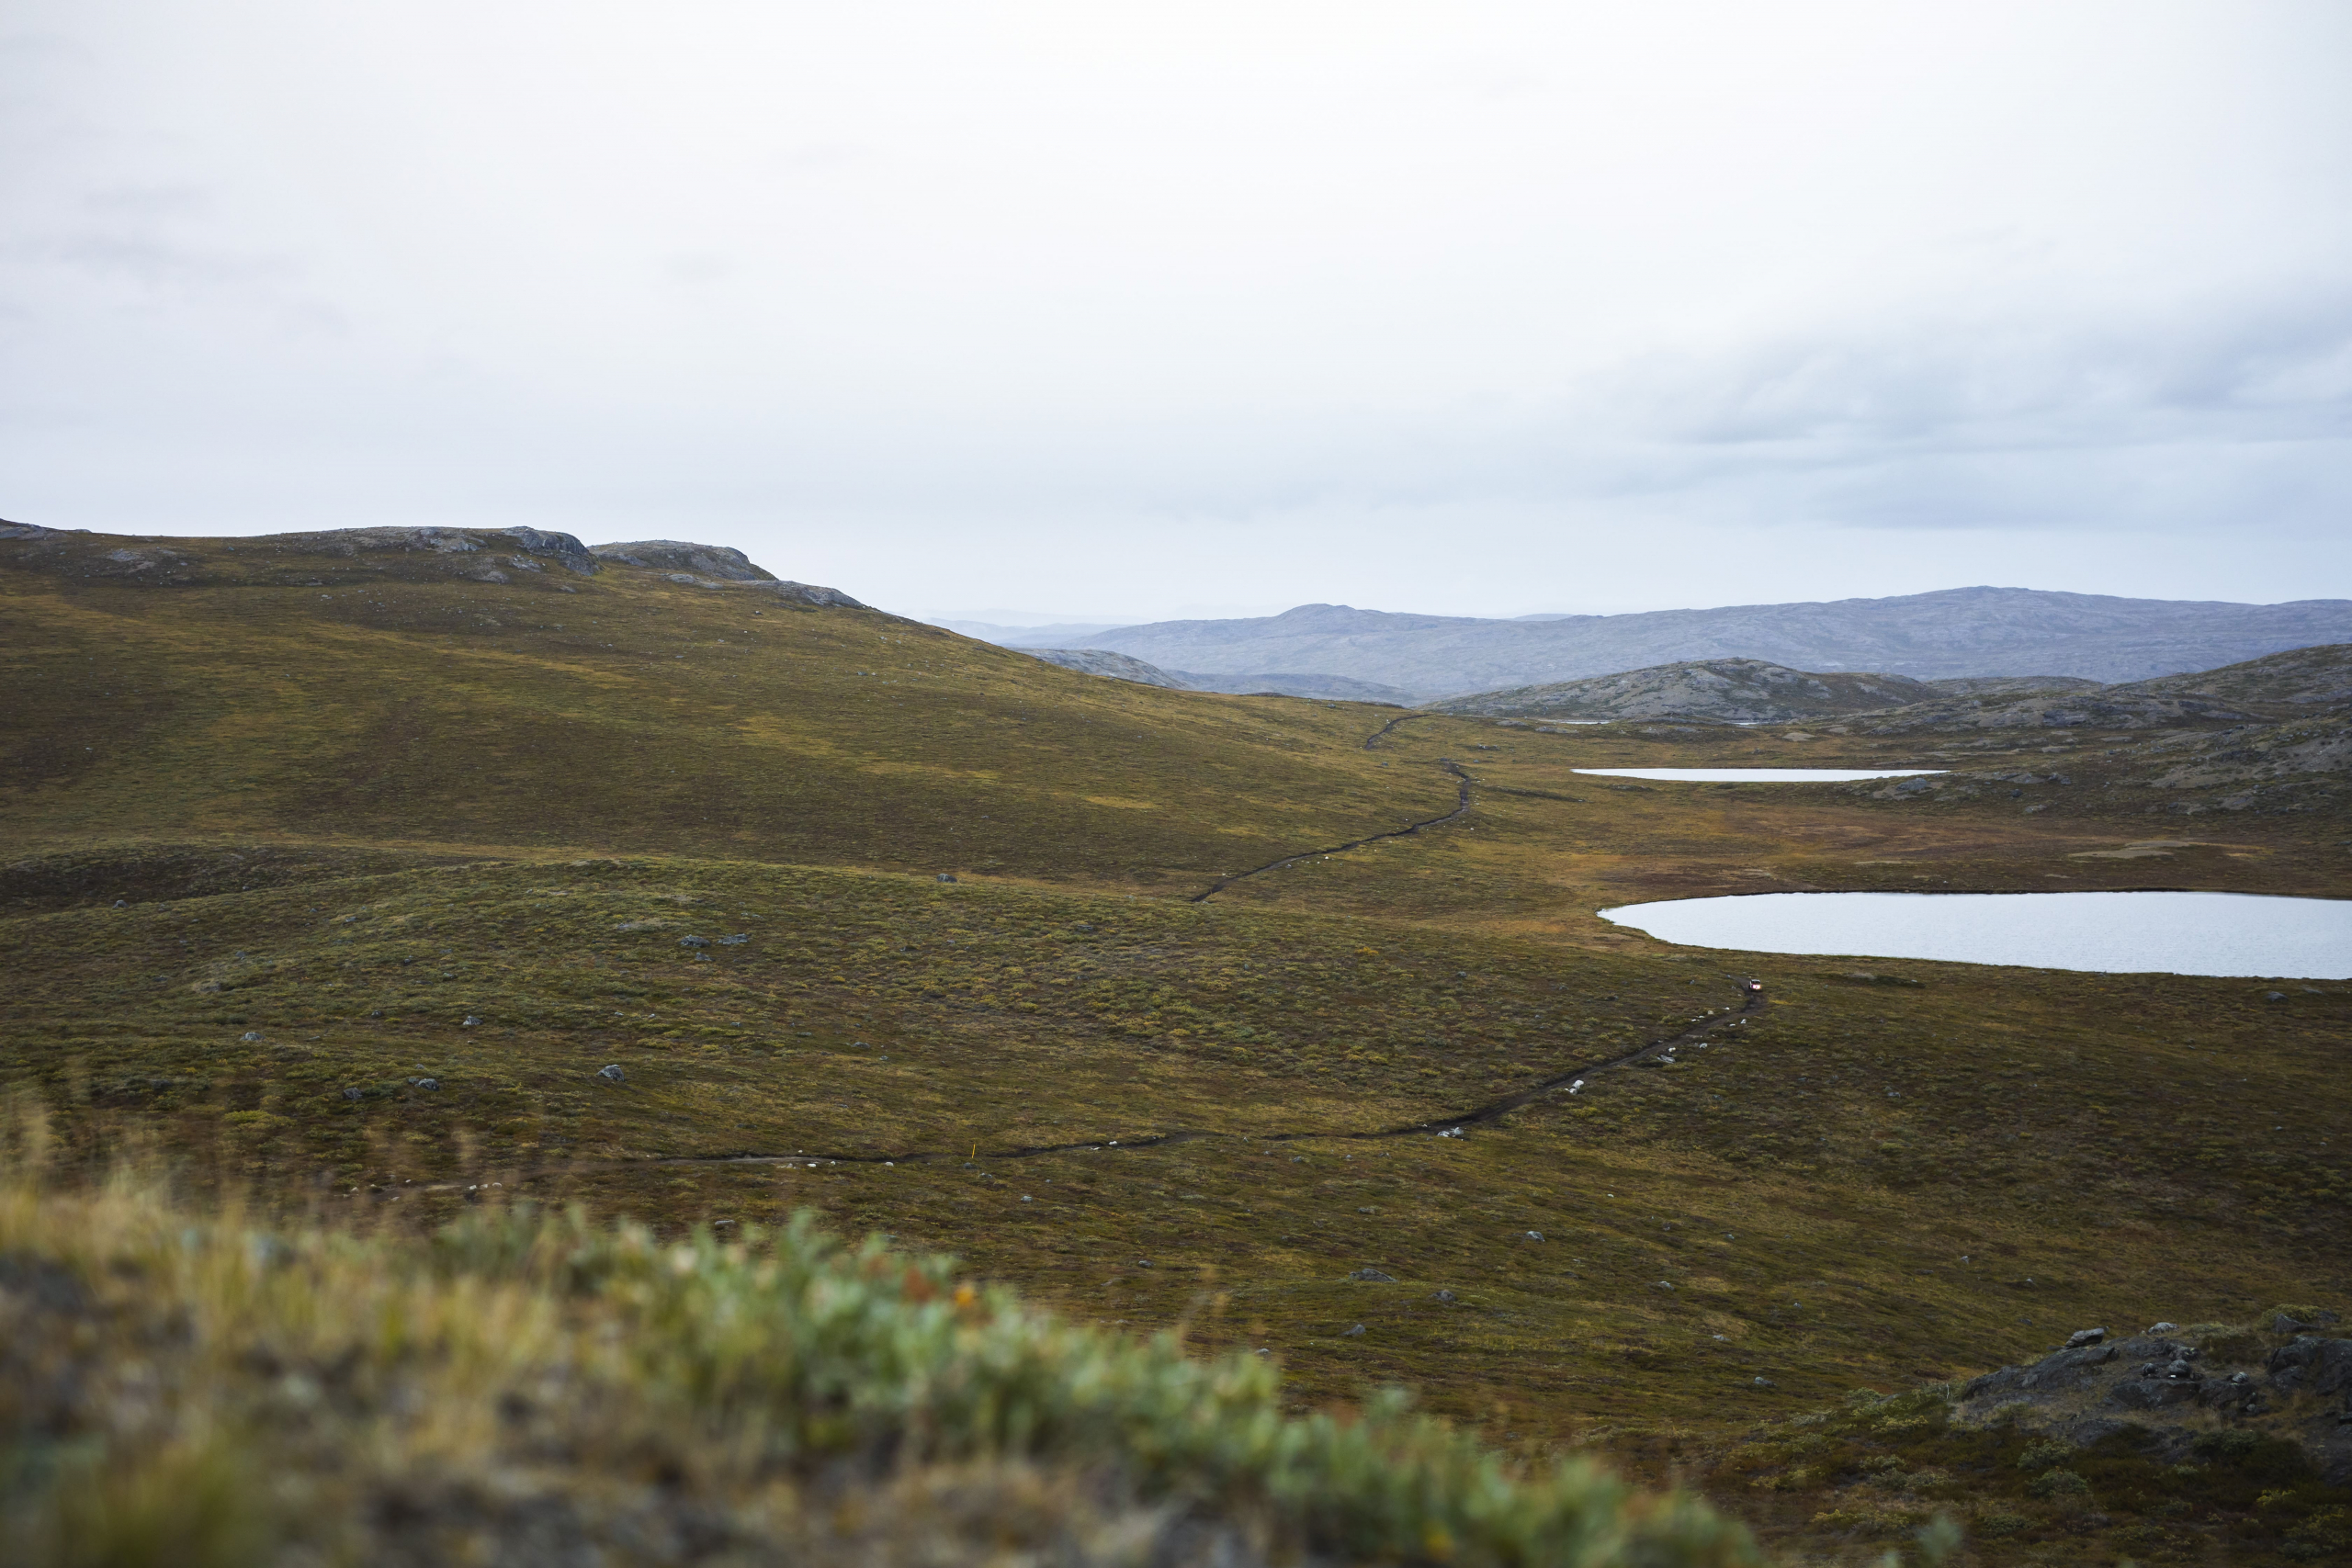 Overview of the road. UTV Trip. Photo by Aningaaq R. Carlsen - Visit Greenland